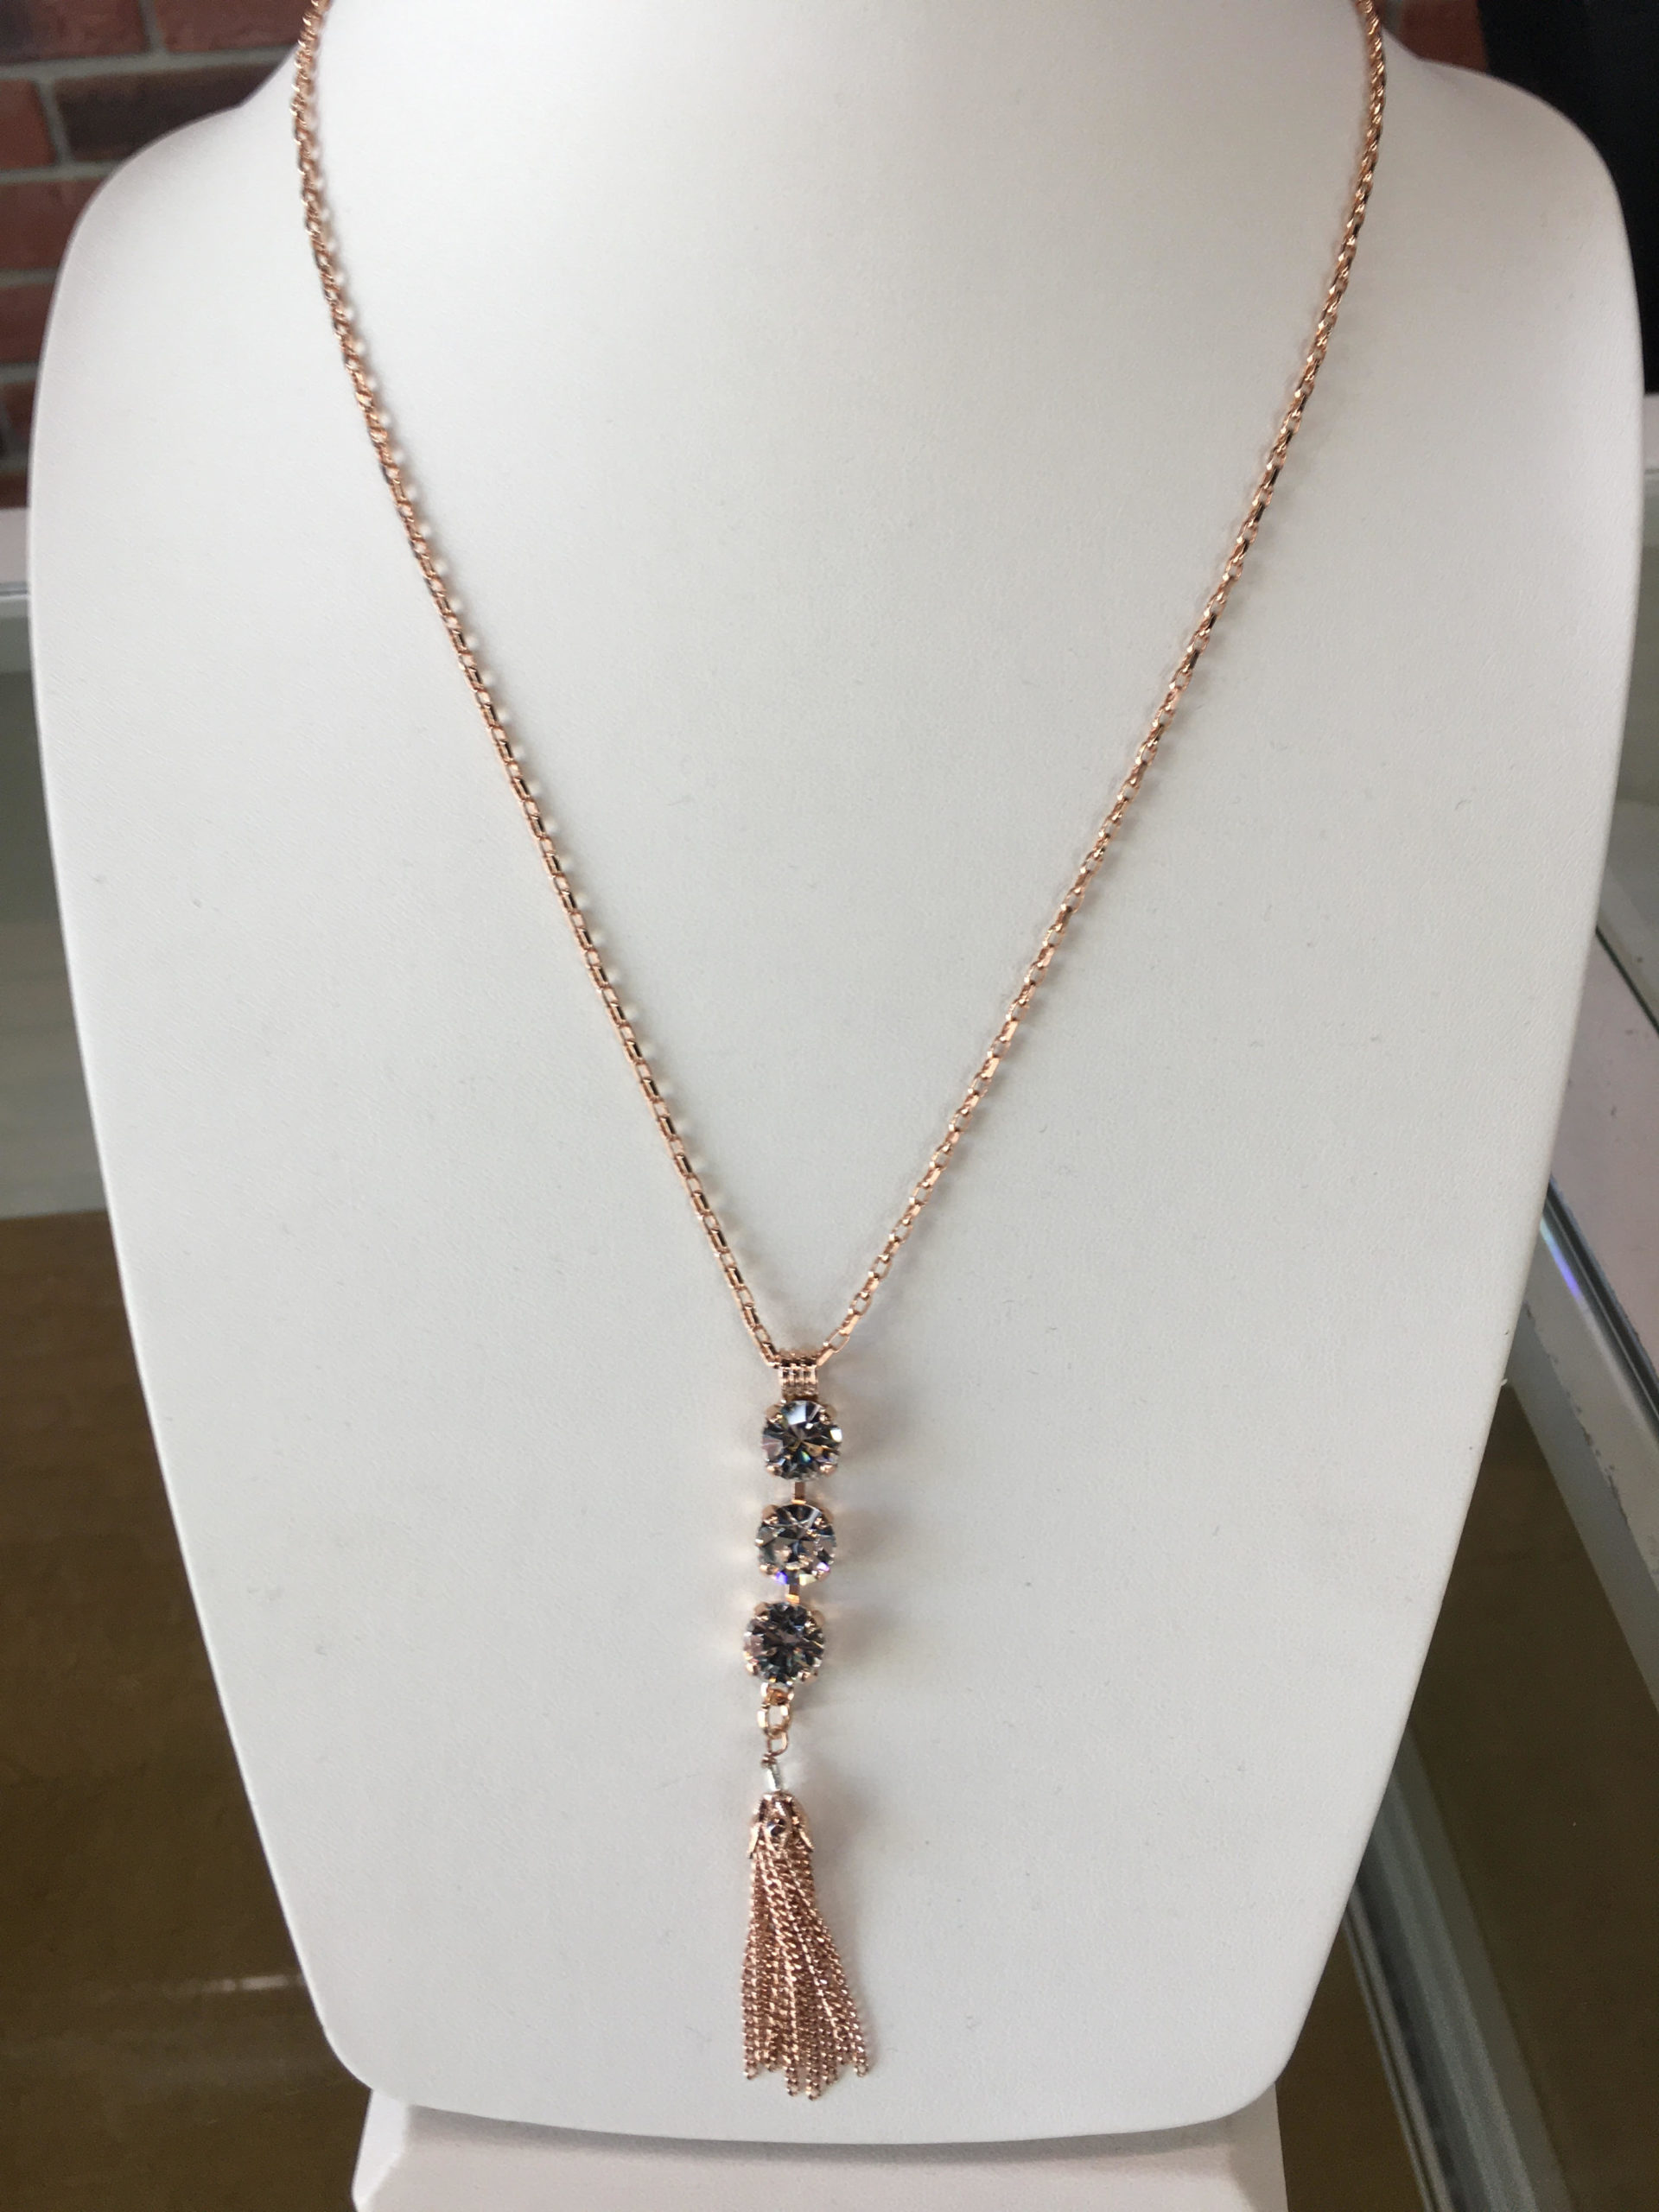 Mariana Swarovski crystal necklace in tose gold plate